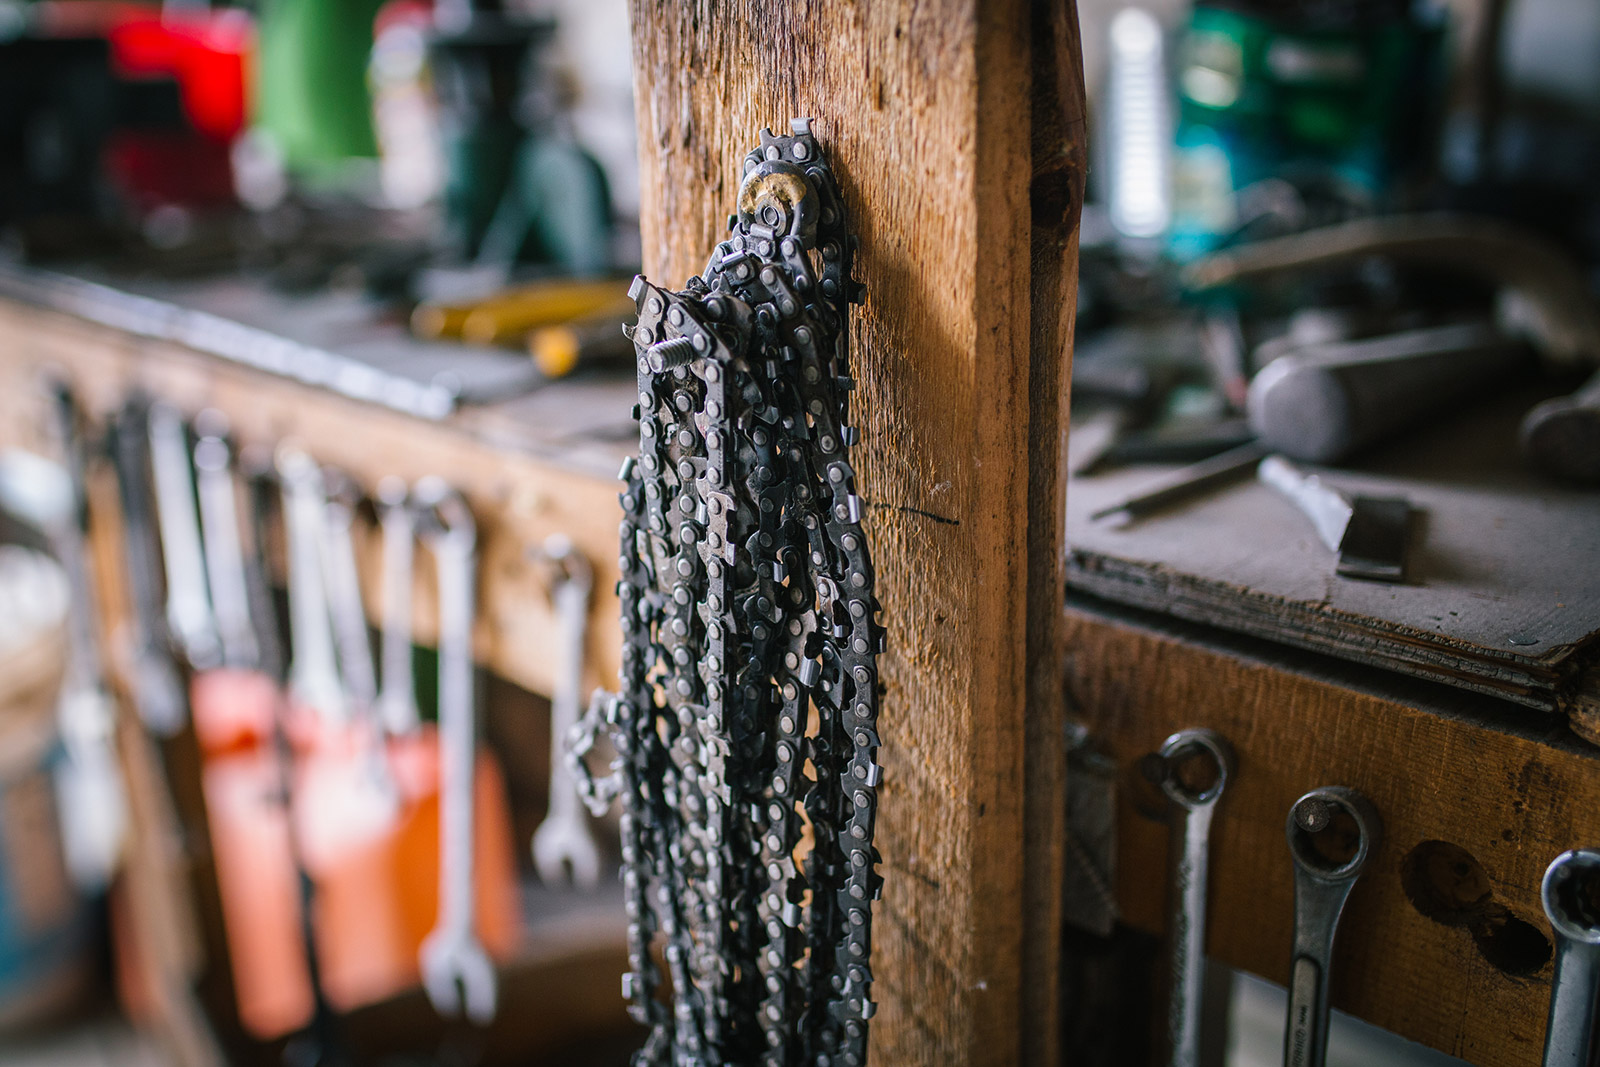 In this Montana photography session, Phil Crist shows the equipment used to build his saws.